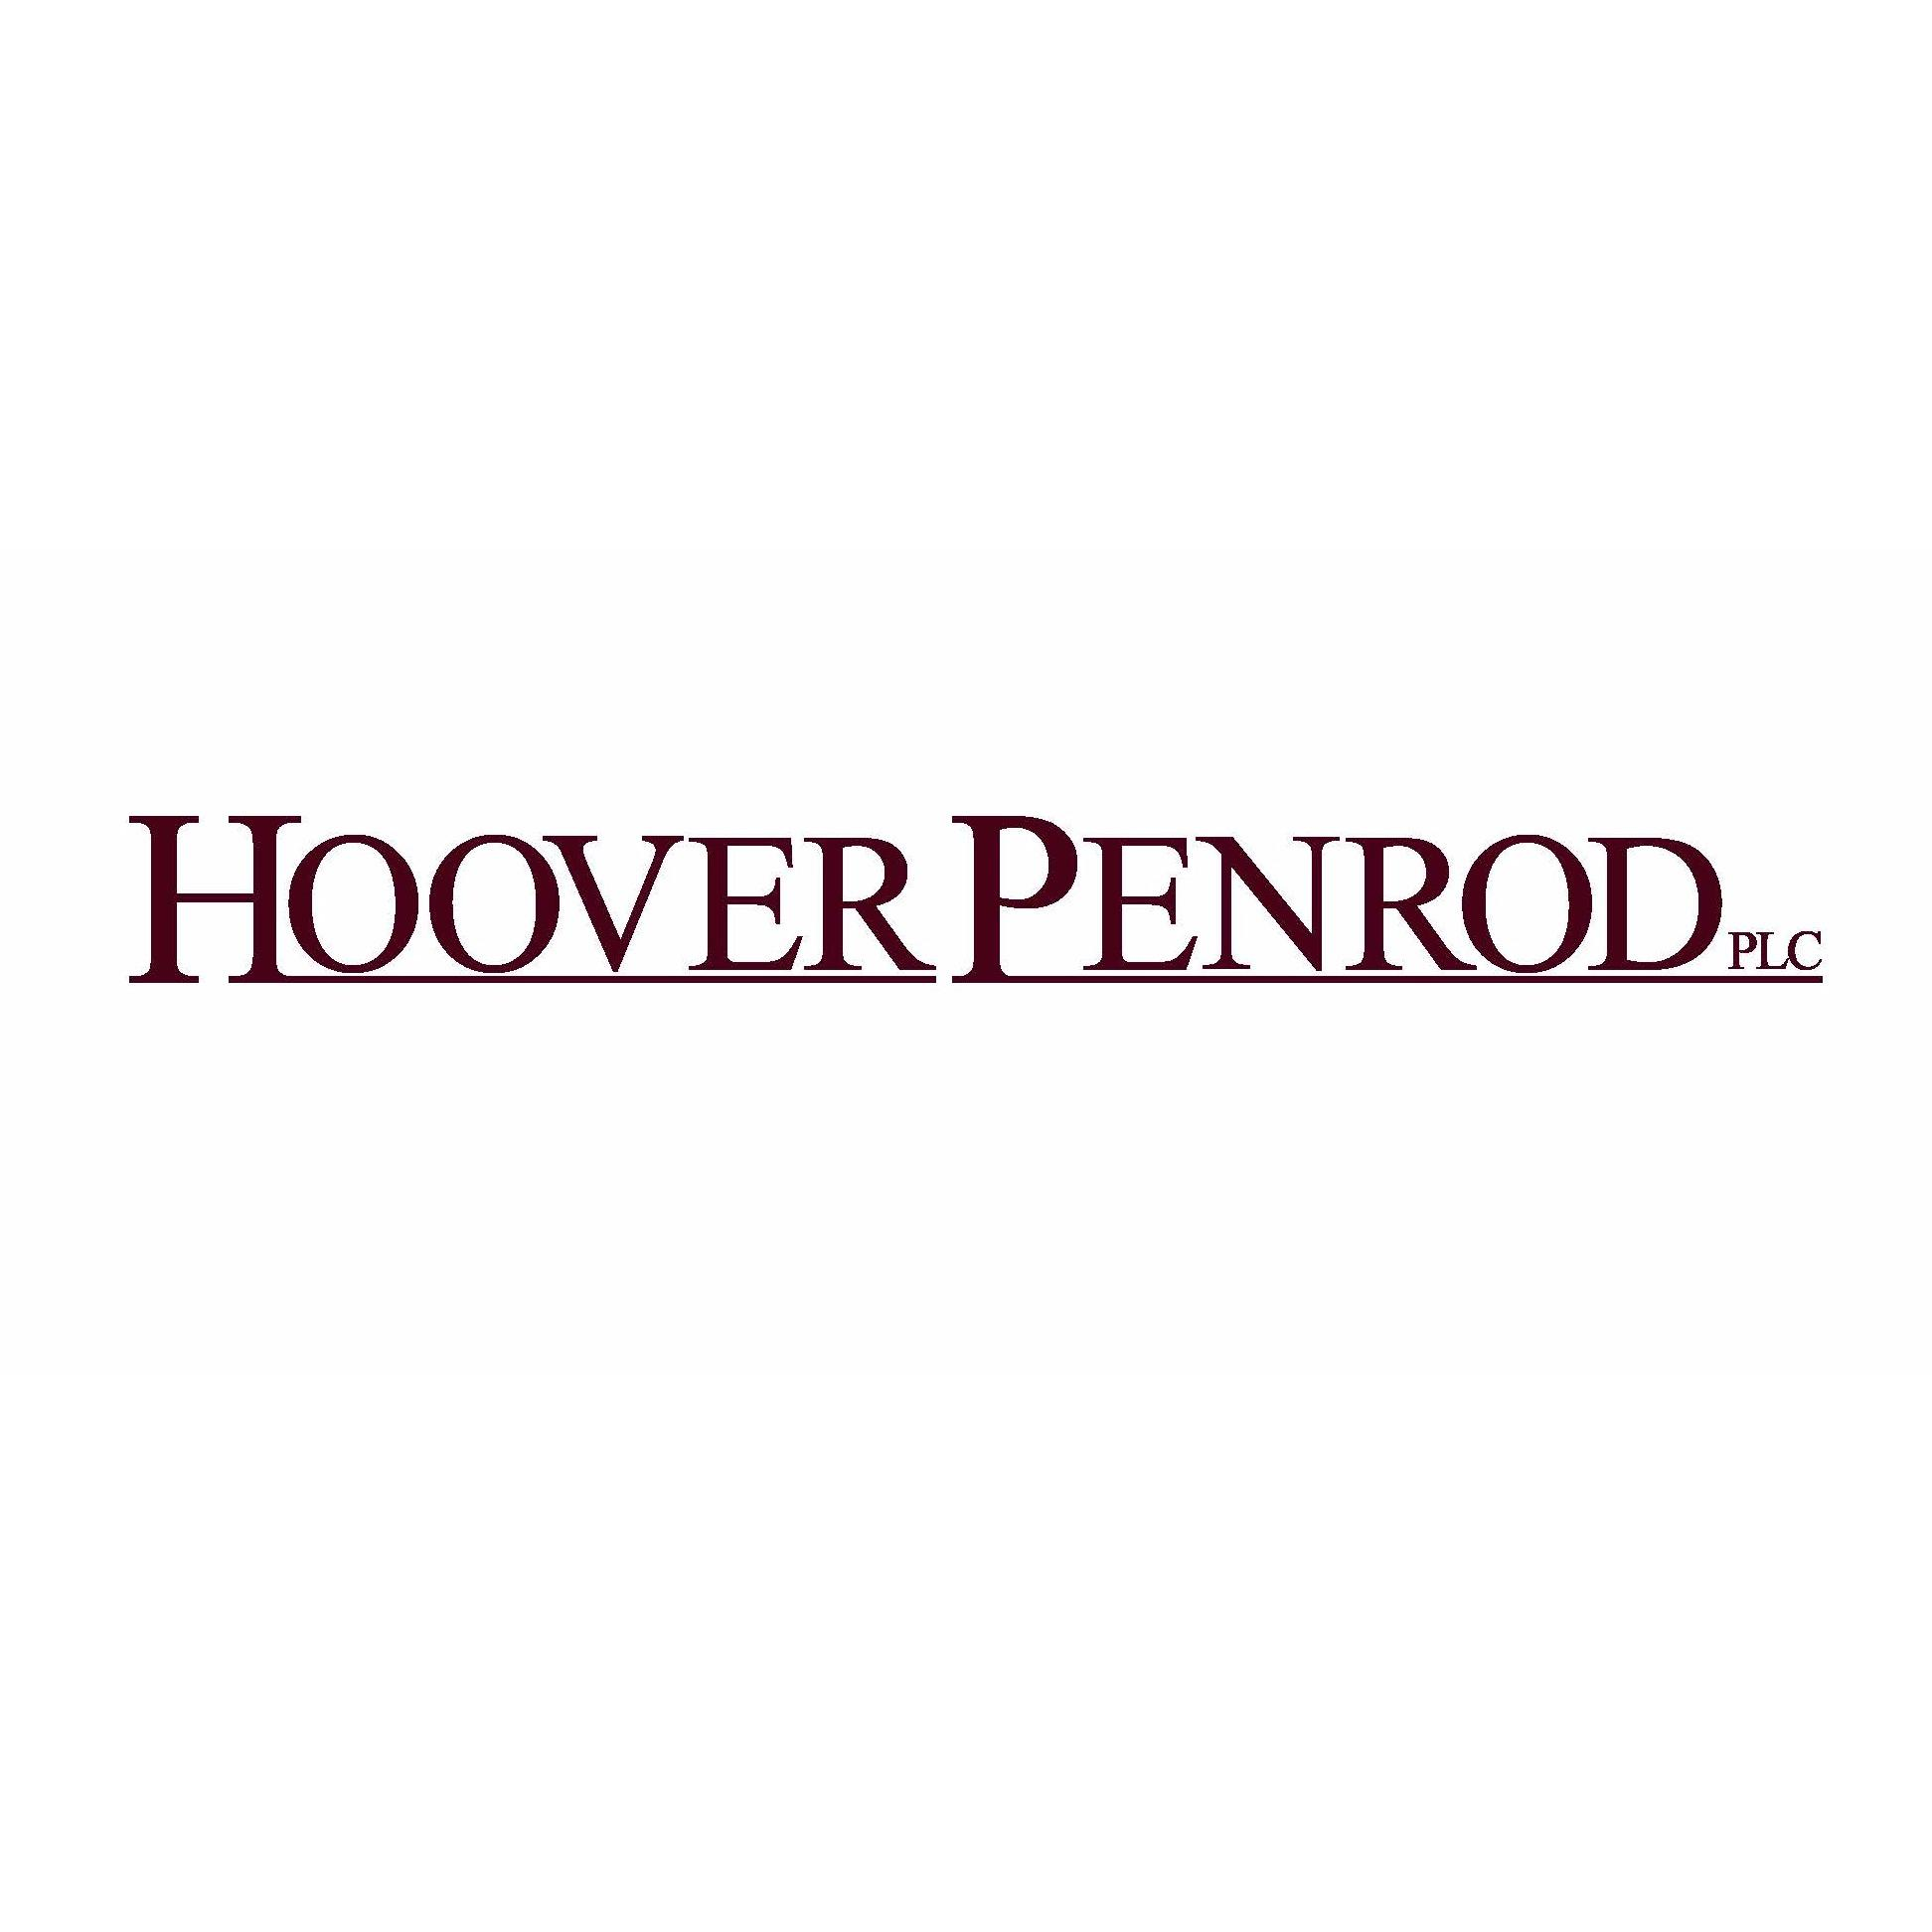 Hoover Penrod PLC